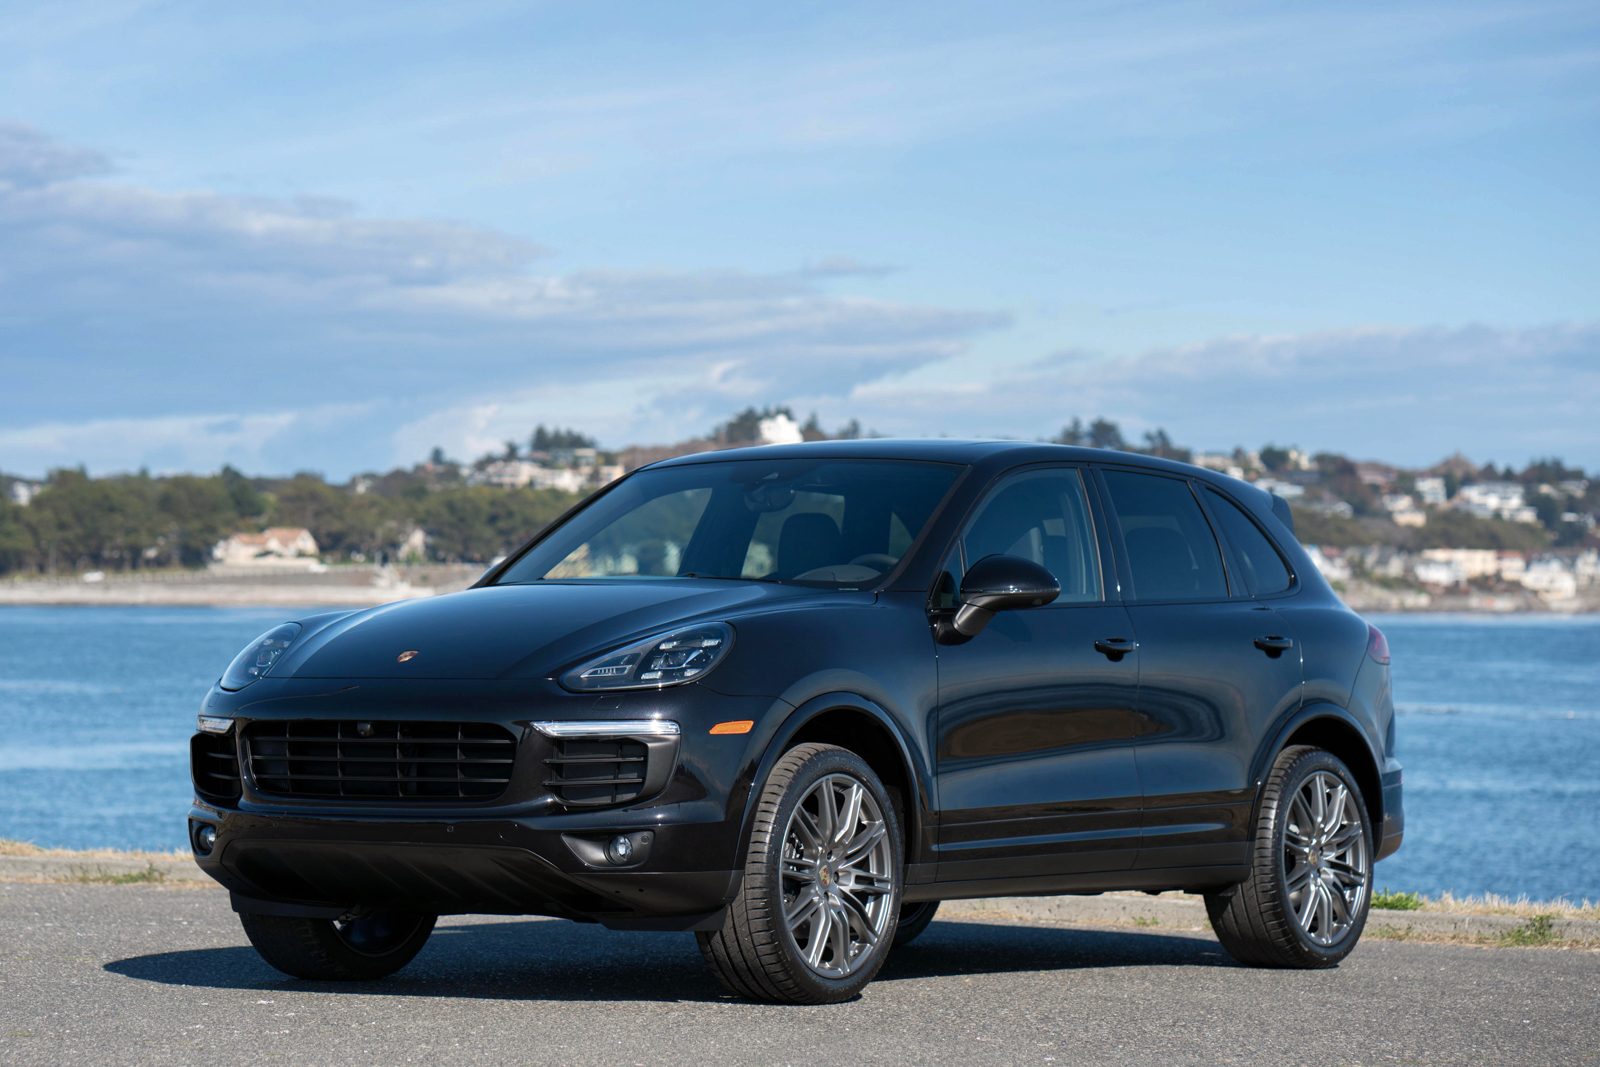 2017 Porsche Cayenne Platinum Edition For